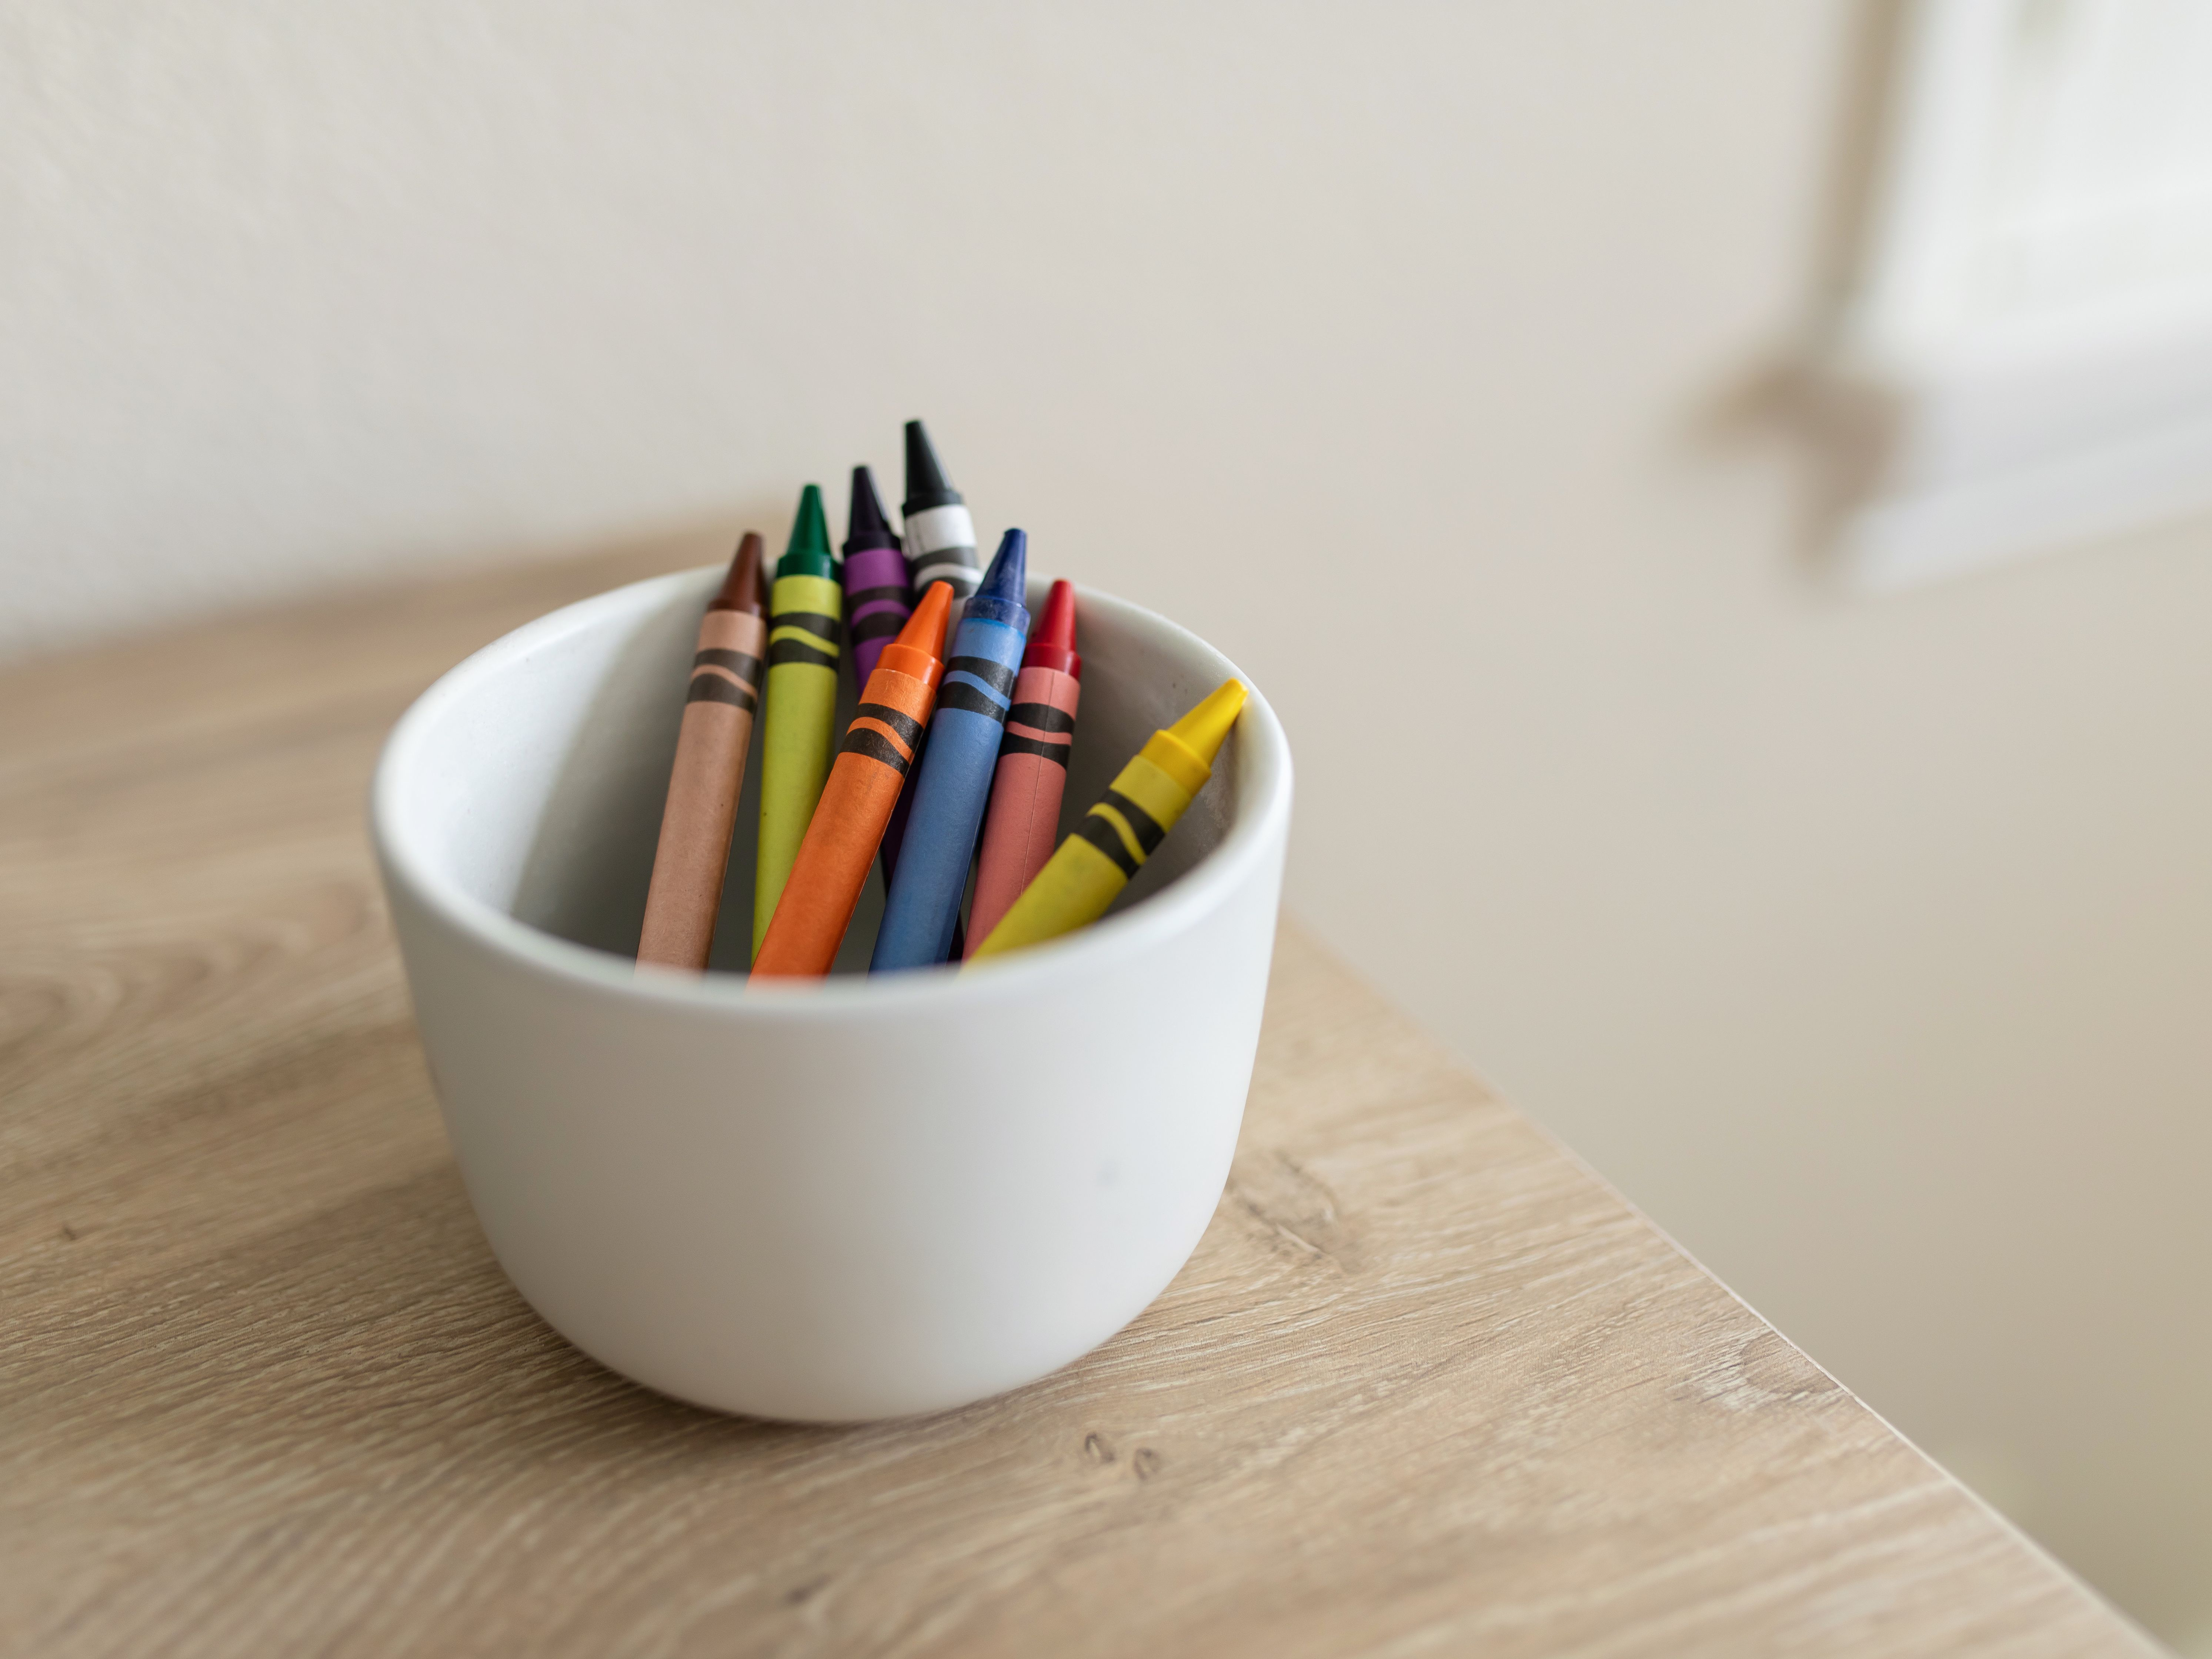 How To Remove Crayon Stains From Walls